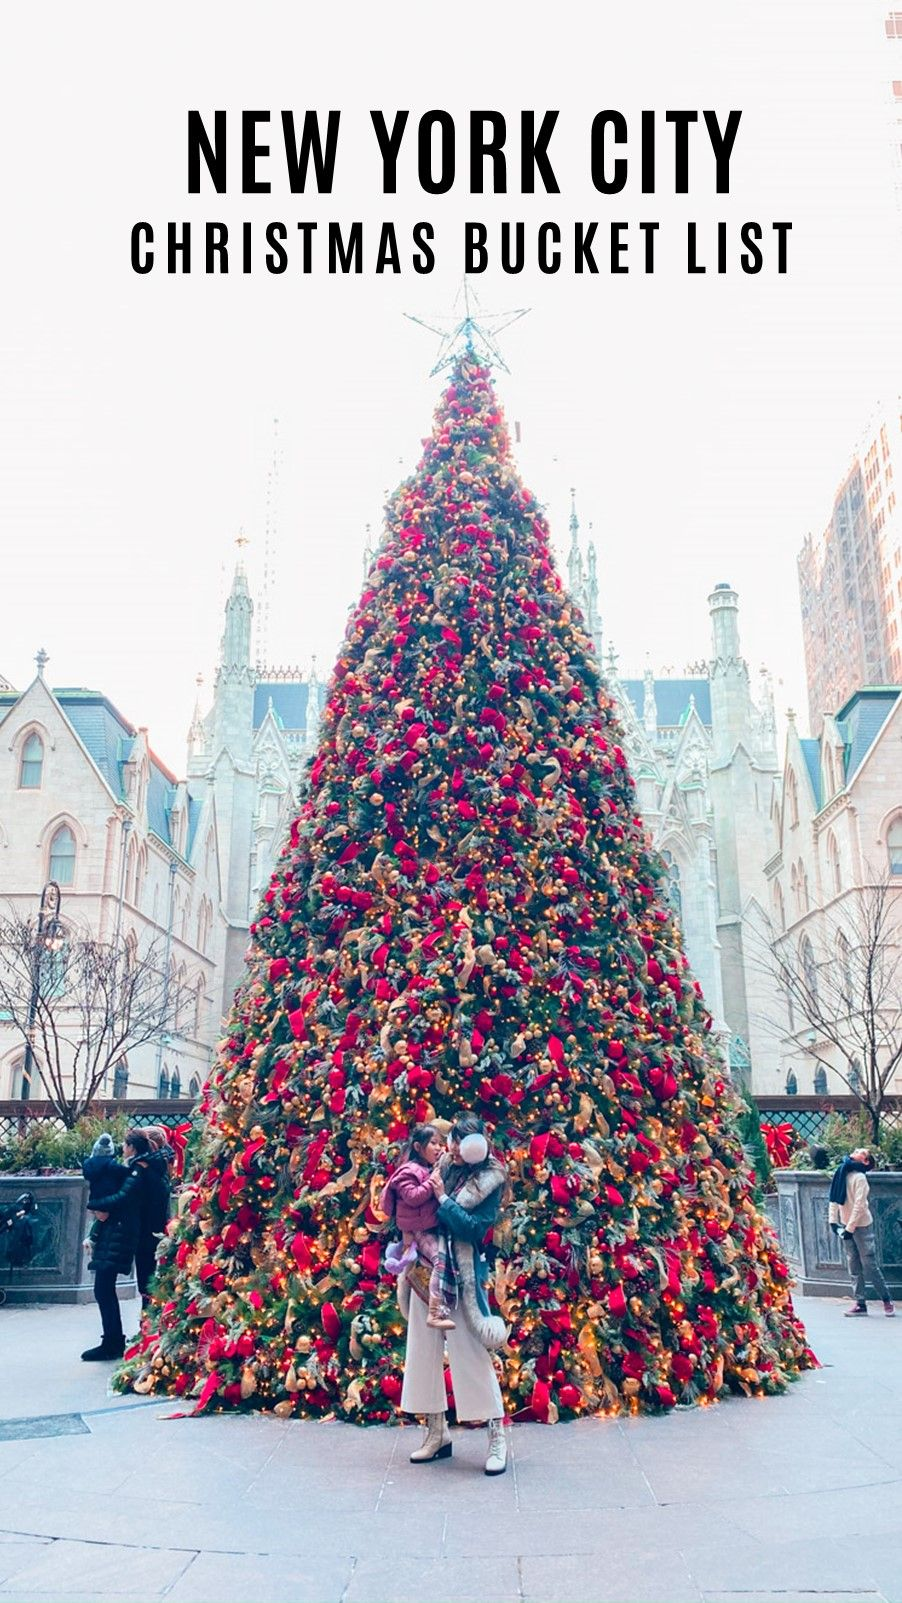 Things To Do In Nyc On Christmas Day 2020 New York in 2020 | New york travel guide, Nyc travel guide, North